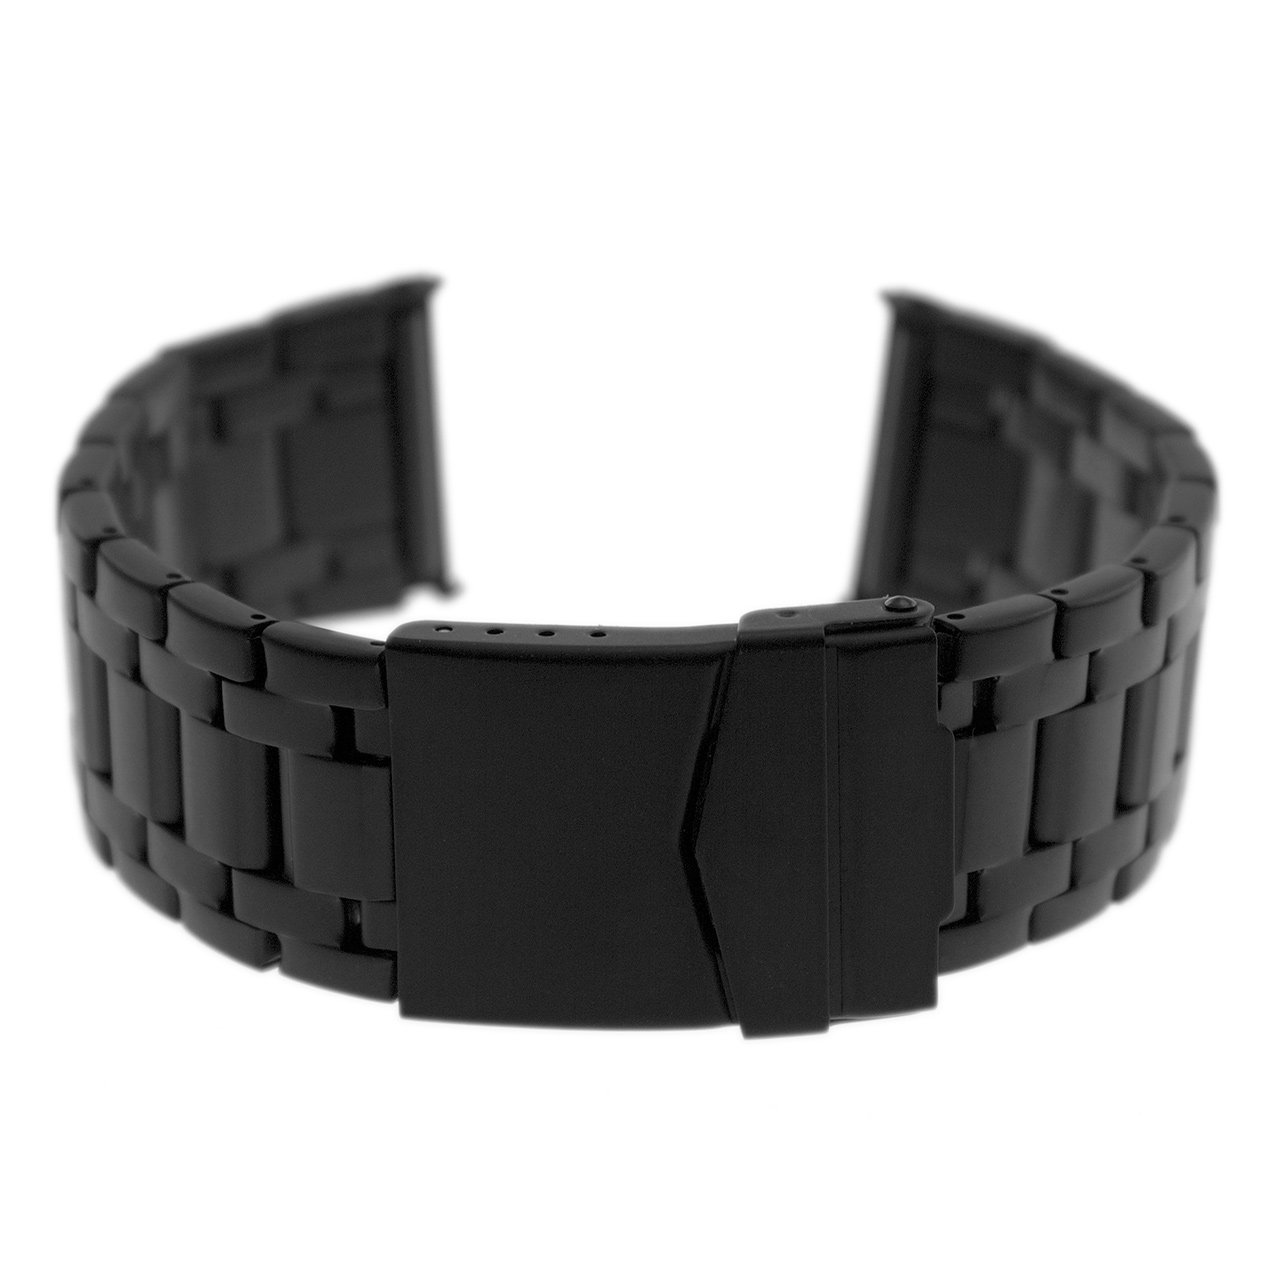 Black Steel Bracelet Band for Evo Seal 23mm Luminox Watches by Watch Experts